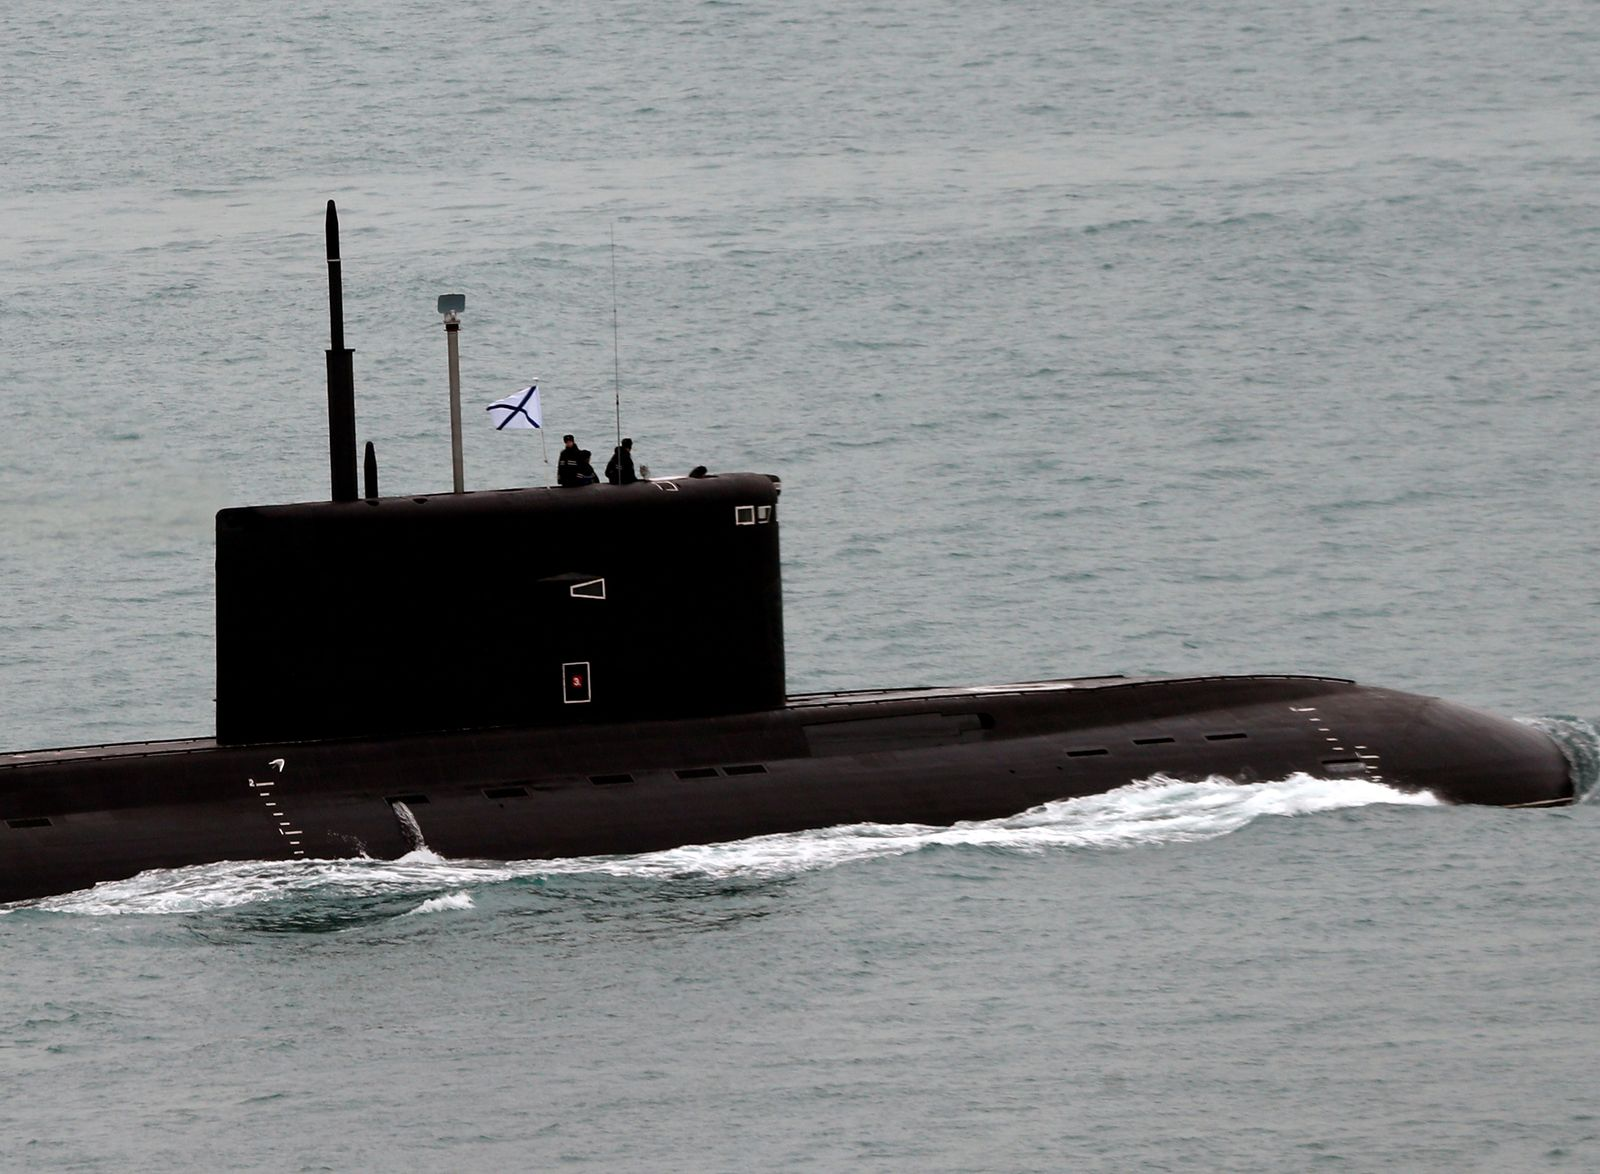 Putin's Secret Weapon: Russia's 200 Knot Supercavitating Torpedoes